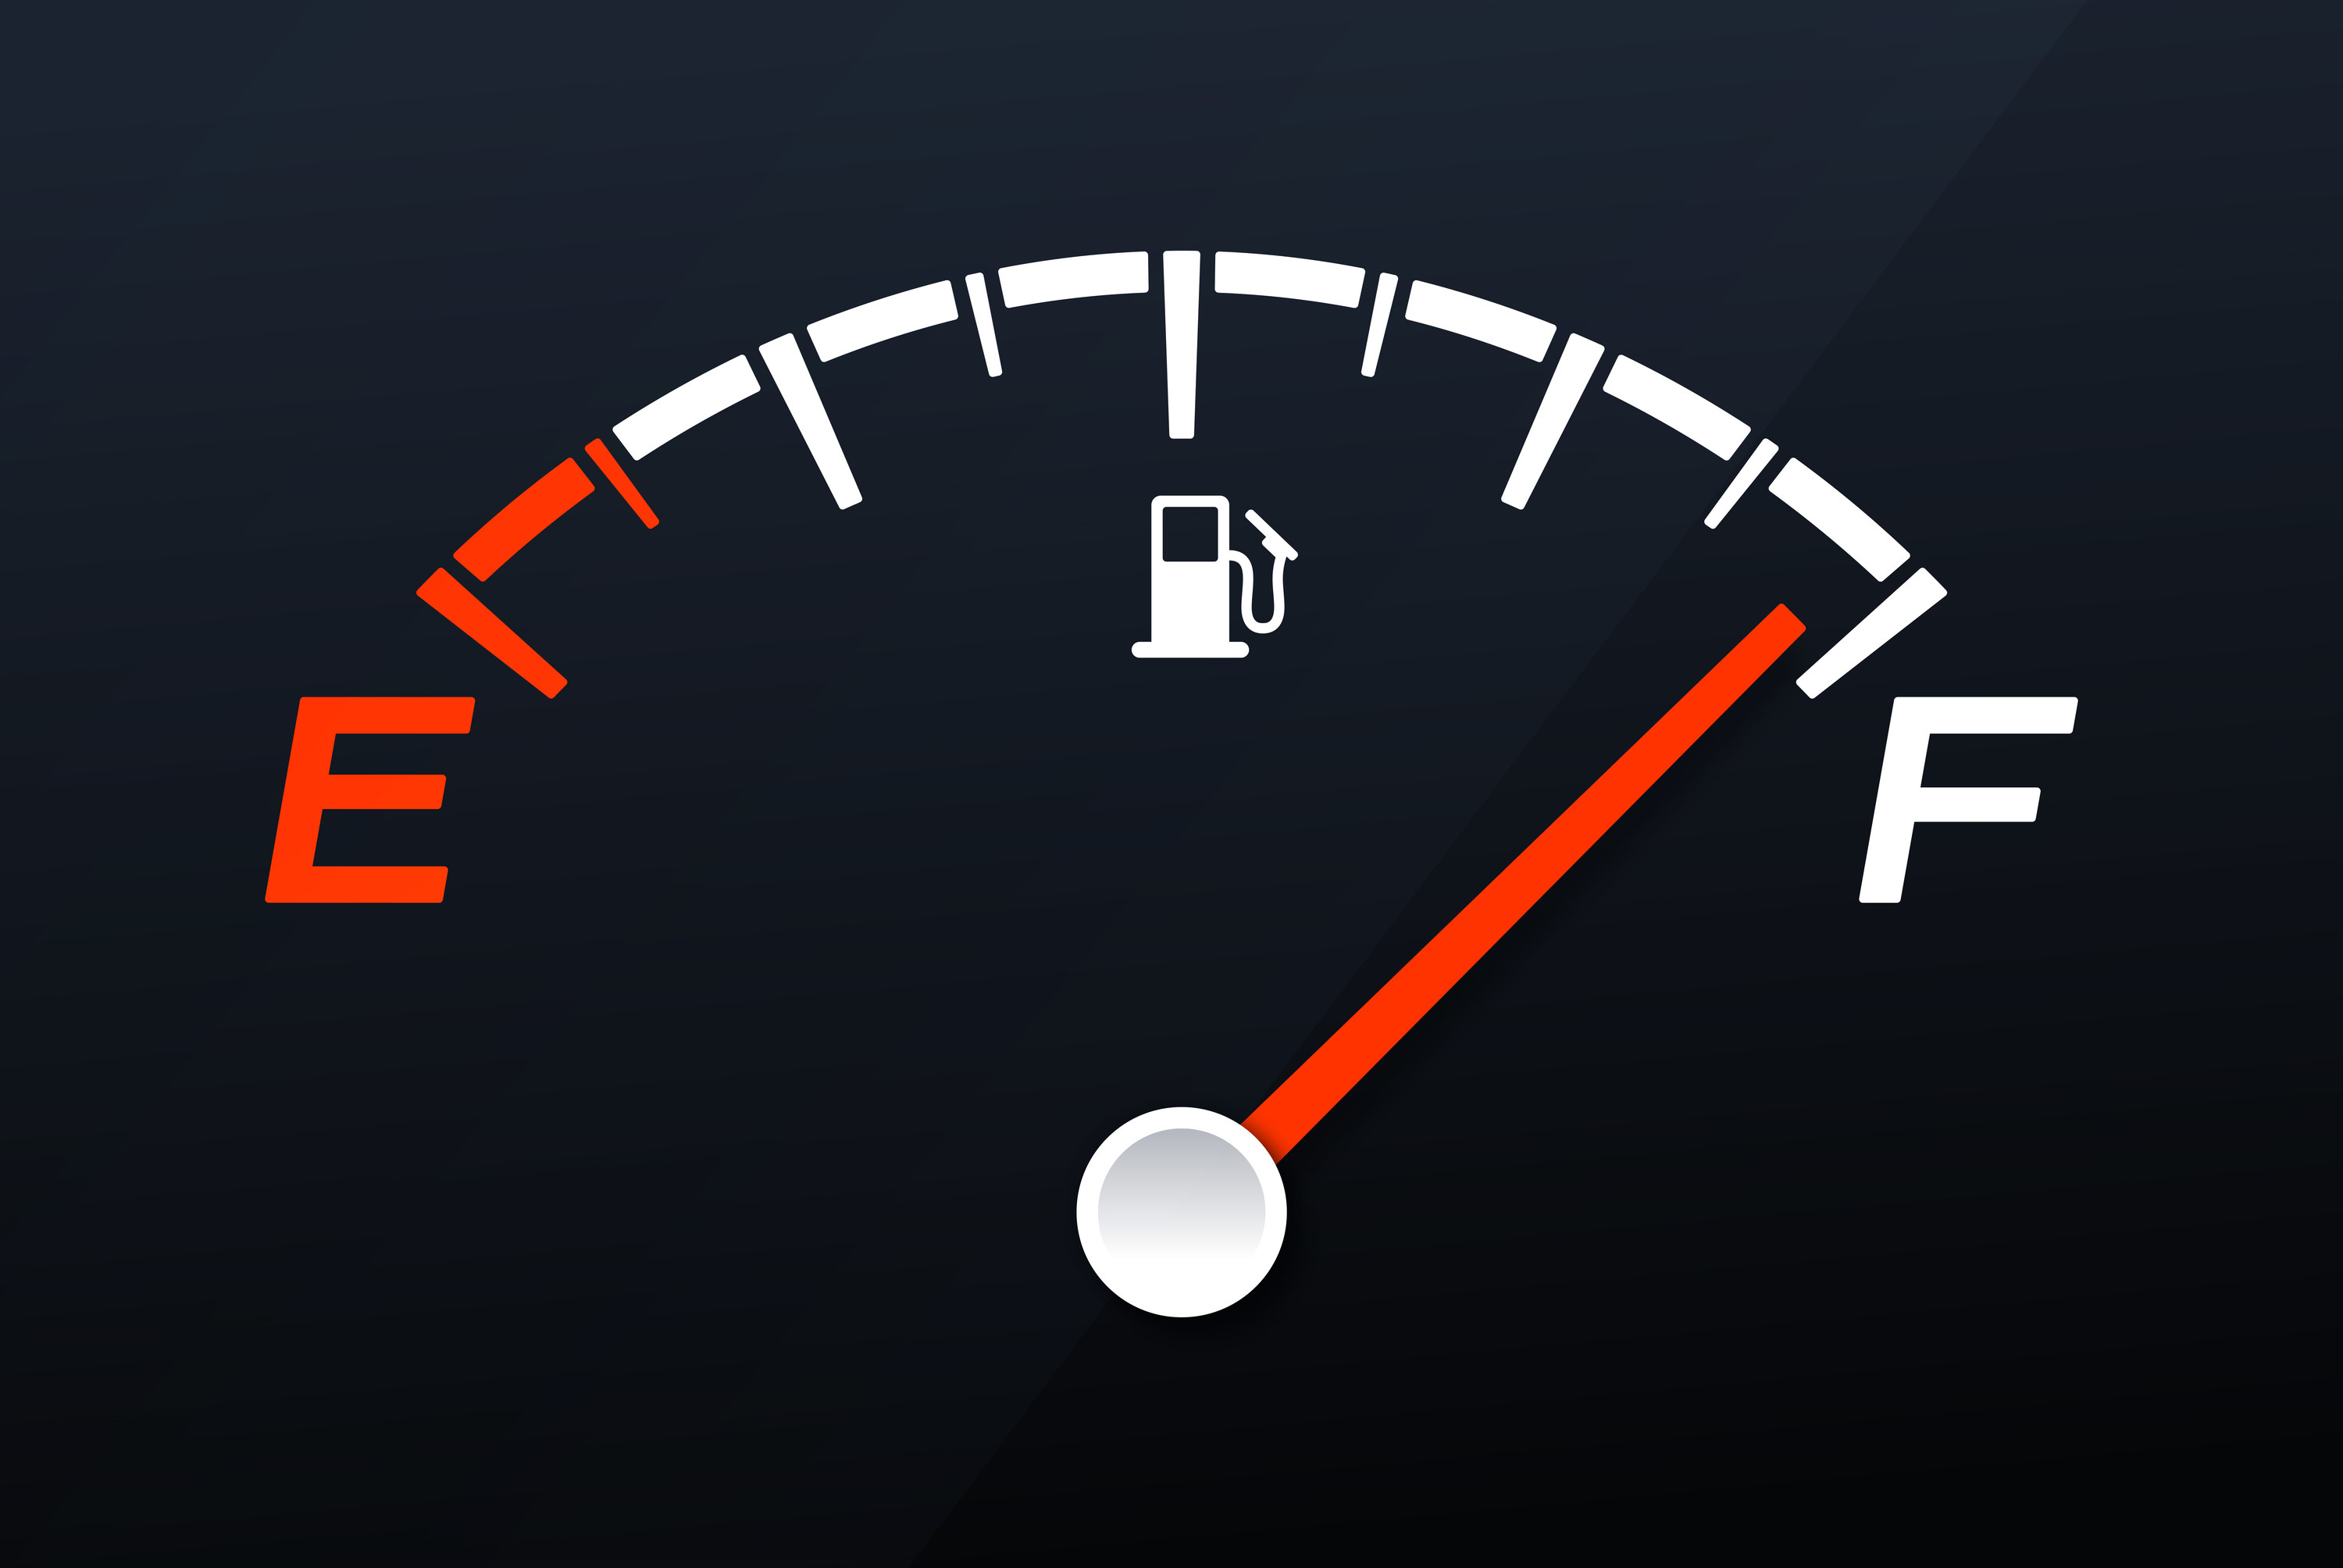 A gas tank on full